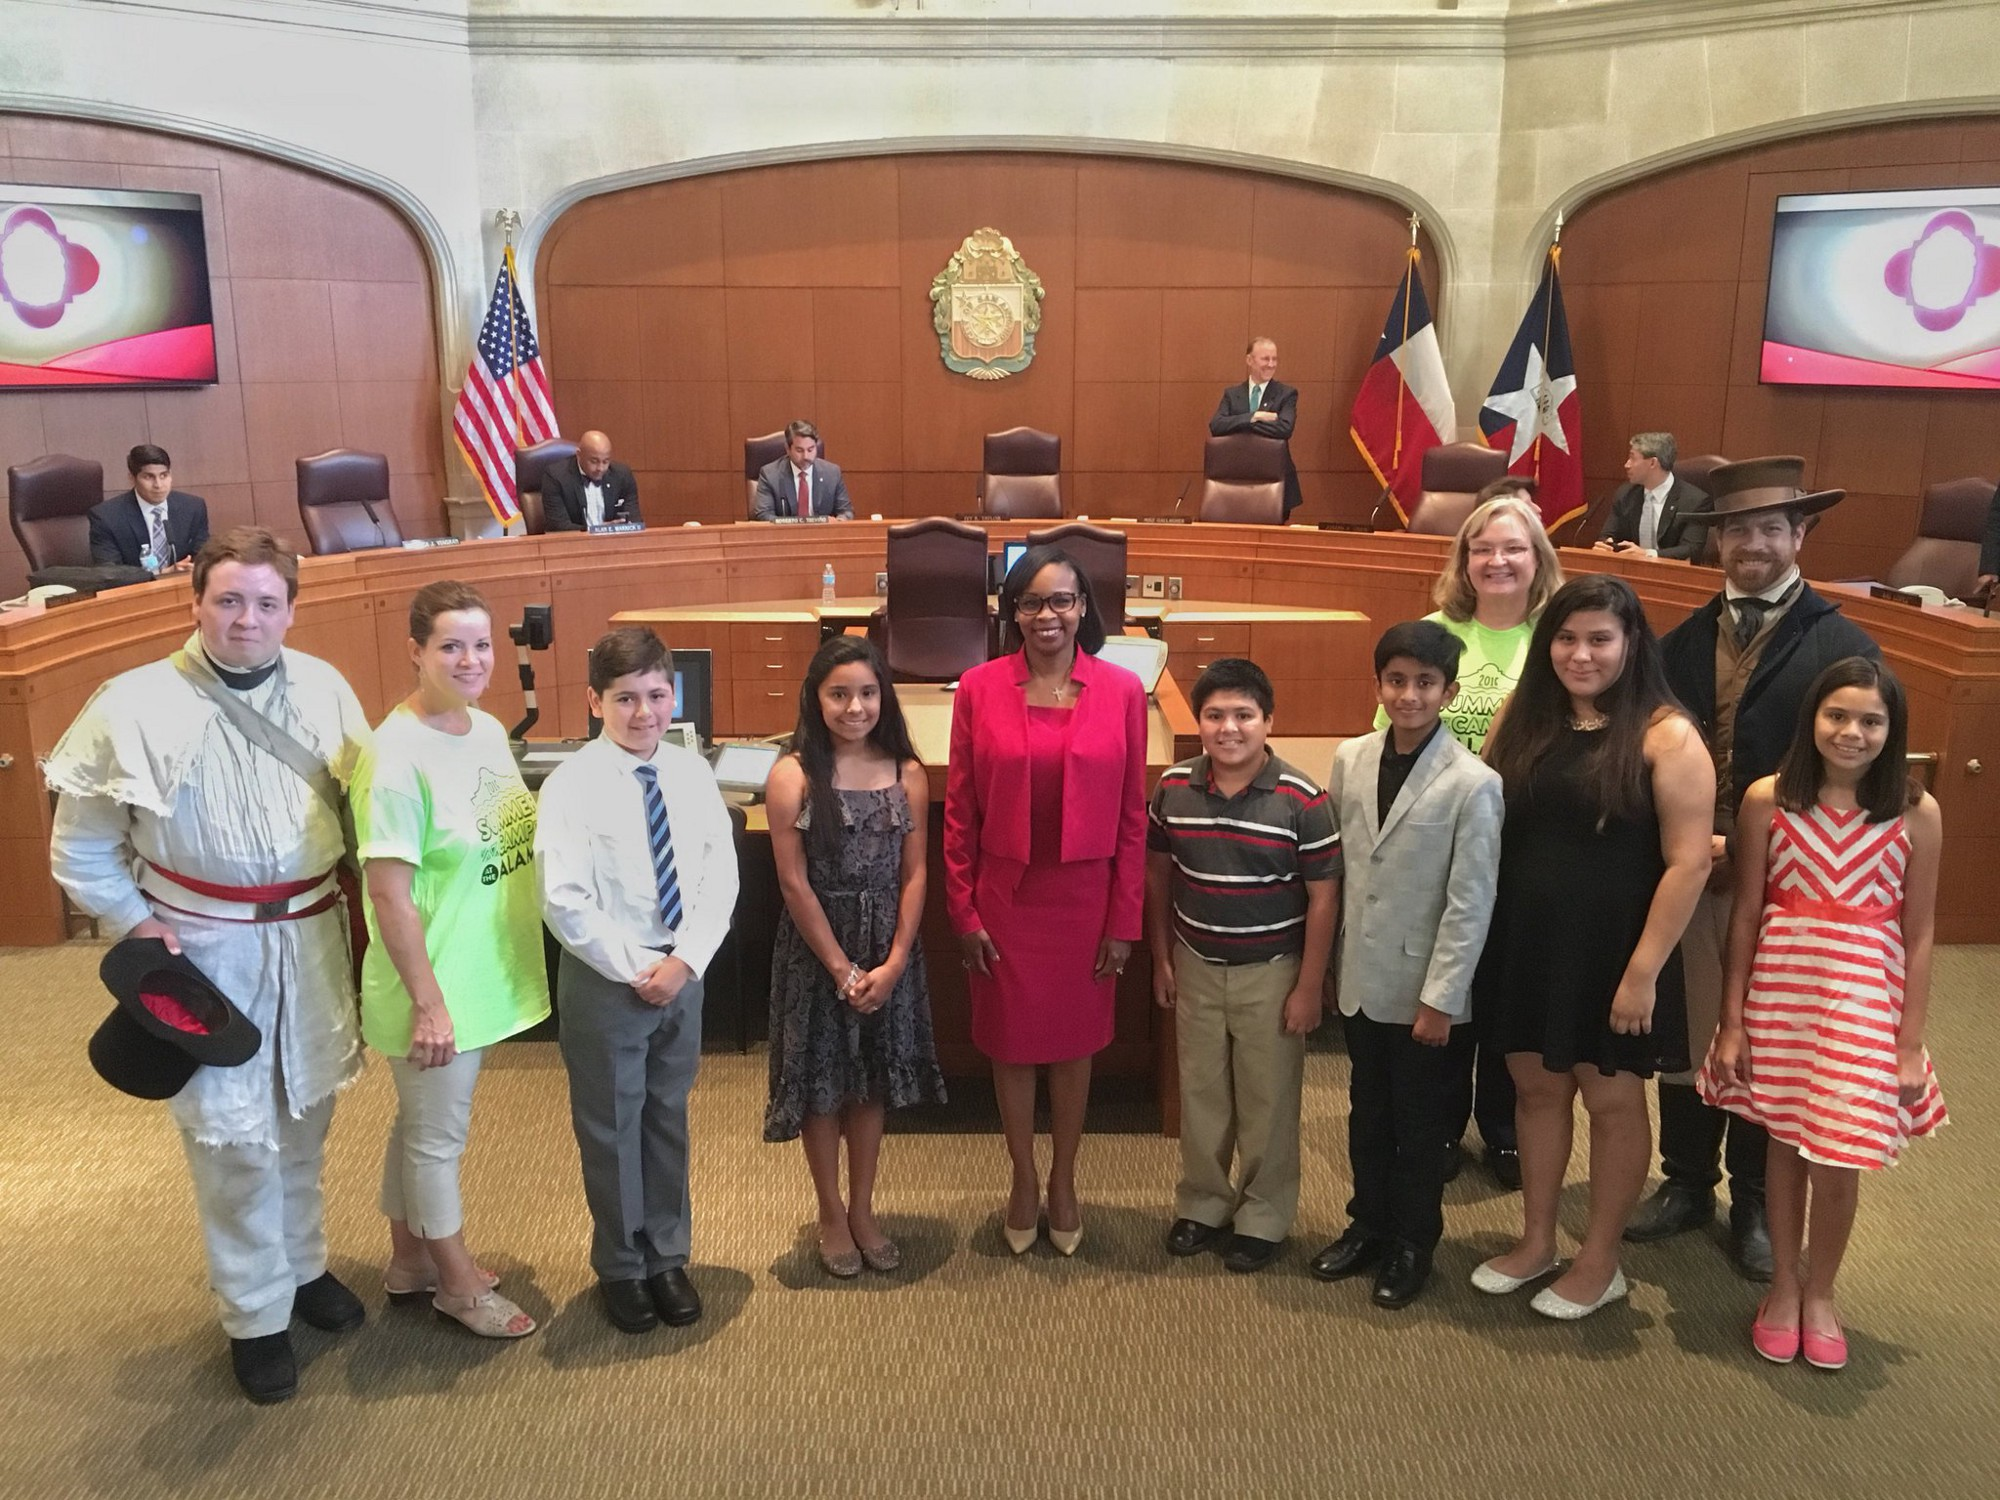 2016 alamo summer camp scholarship essay winners the alamo medium or ivy r taylor honored the six scholarship winners at the san antonio city council ceremonials meeting on 14 2016 photo from or ivy taylor s